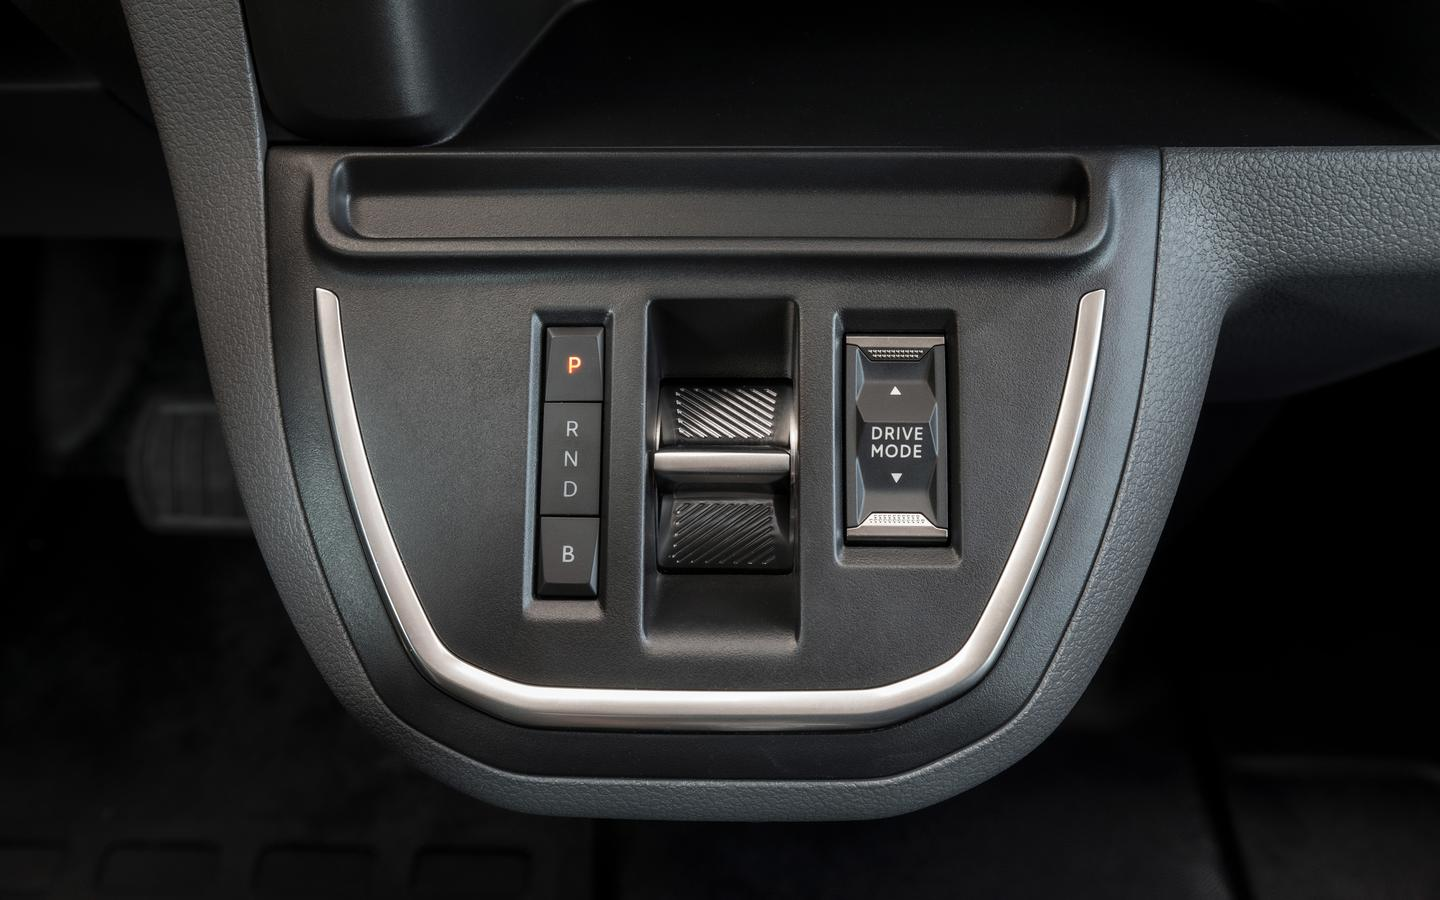 The Vauxhall Vivaro-e has a simplified drive shift system to match its electric powertrain